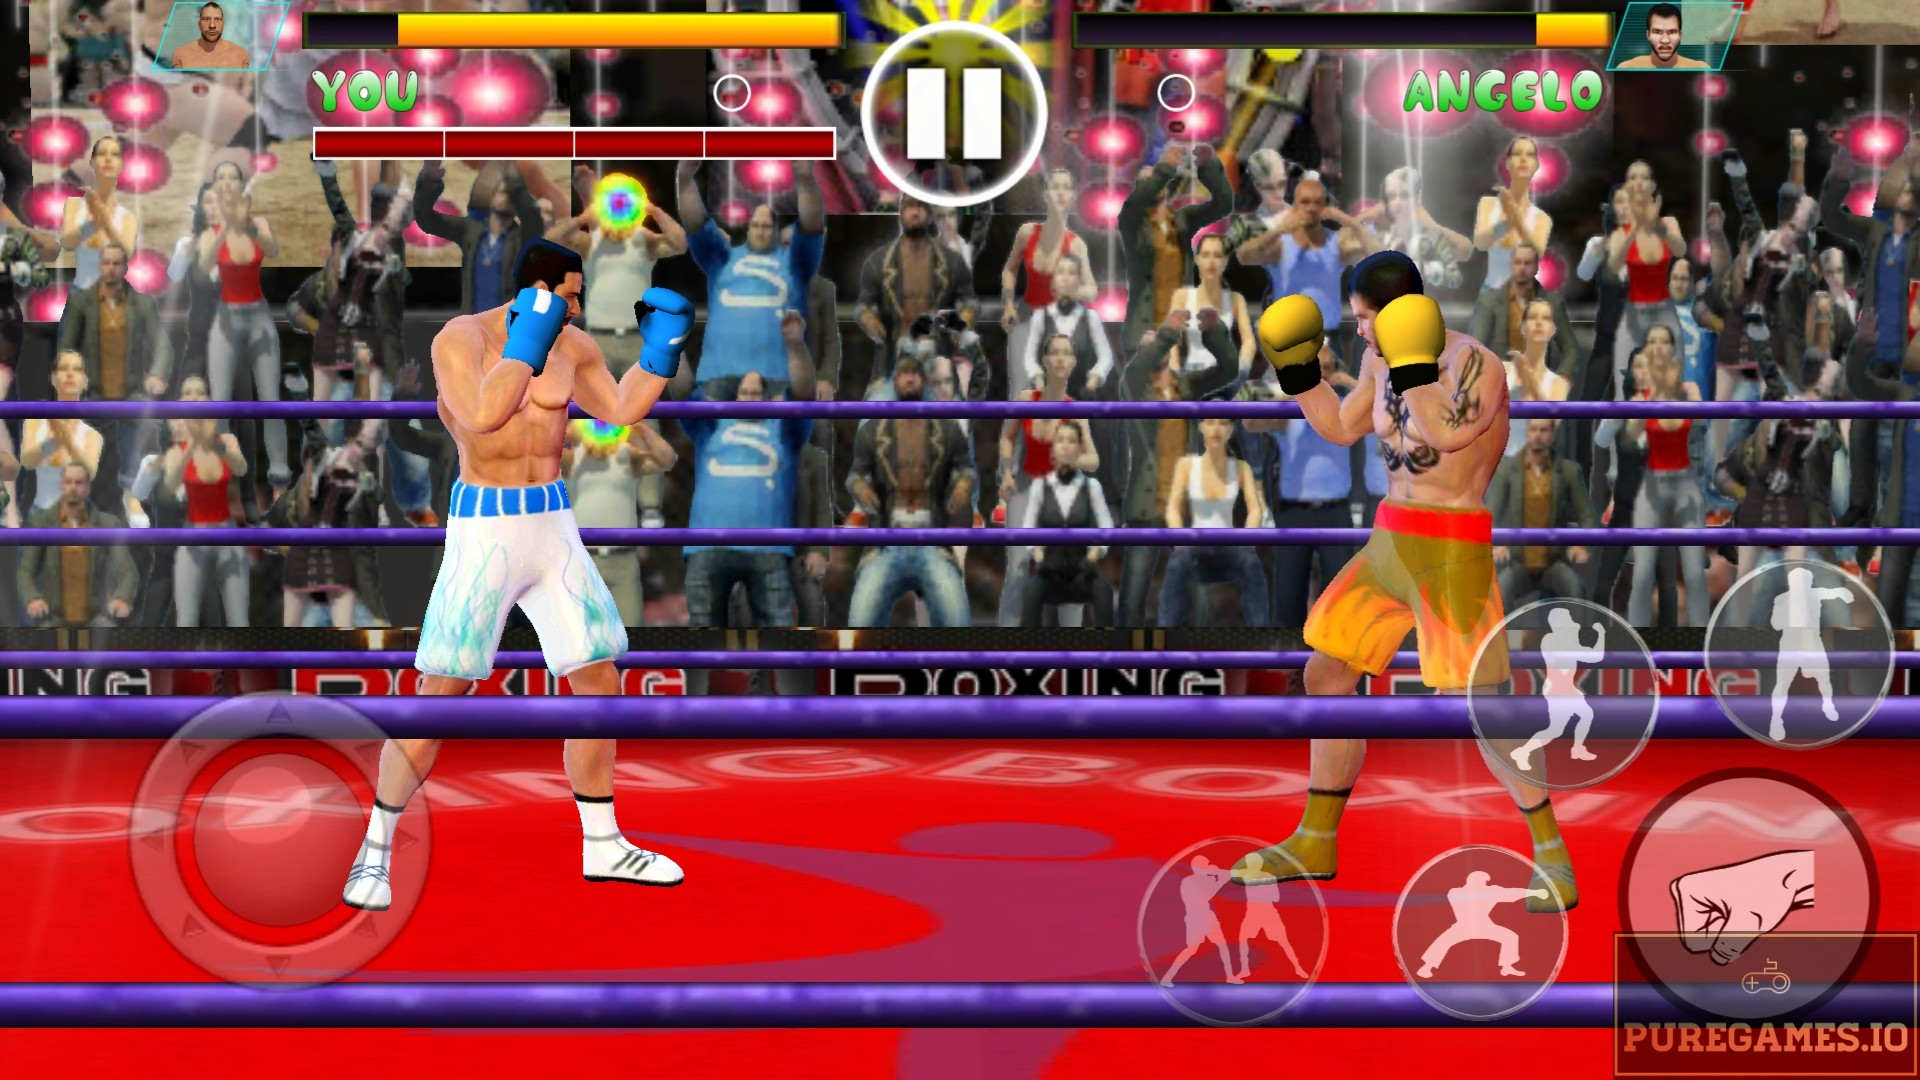 Download Ninja Punch Boxing Warrior: Kung Fu Karate Fighter APK - For Android 13